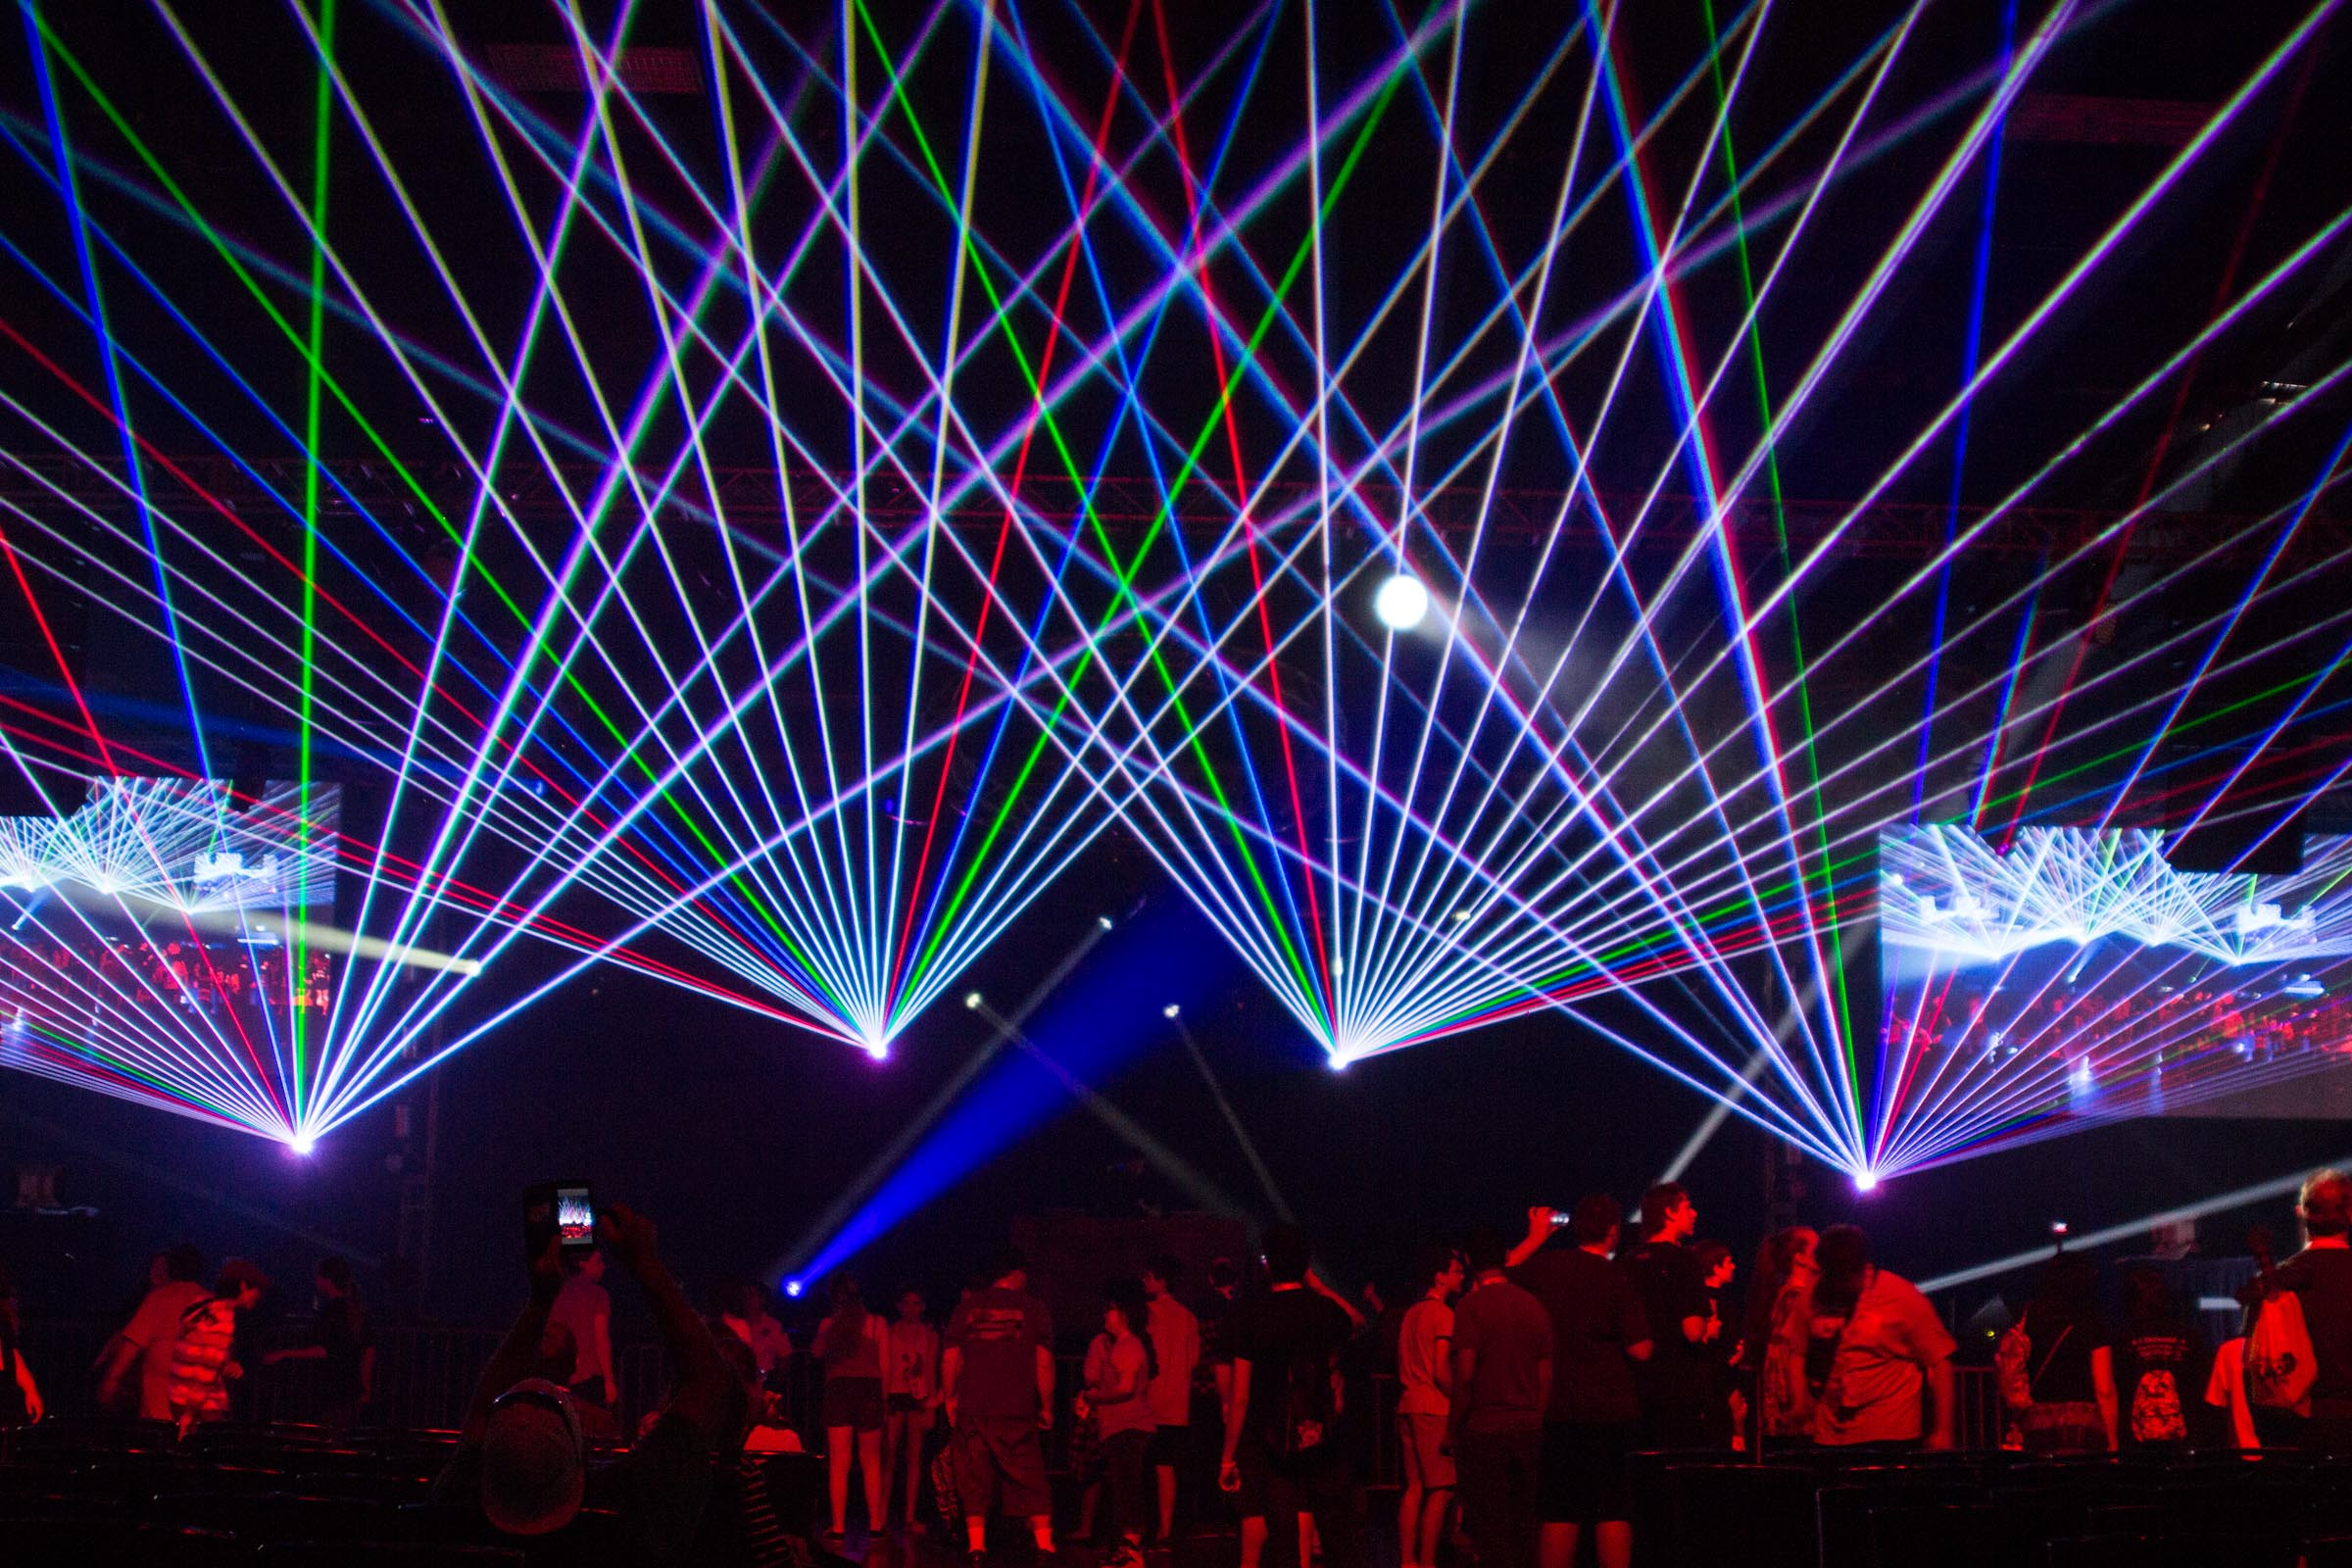 Lasers for Special Events Conference Lighting and Special Effects